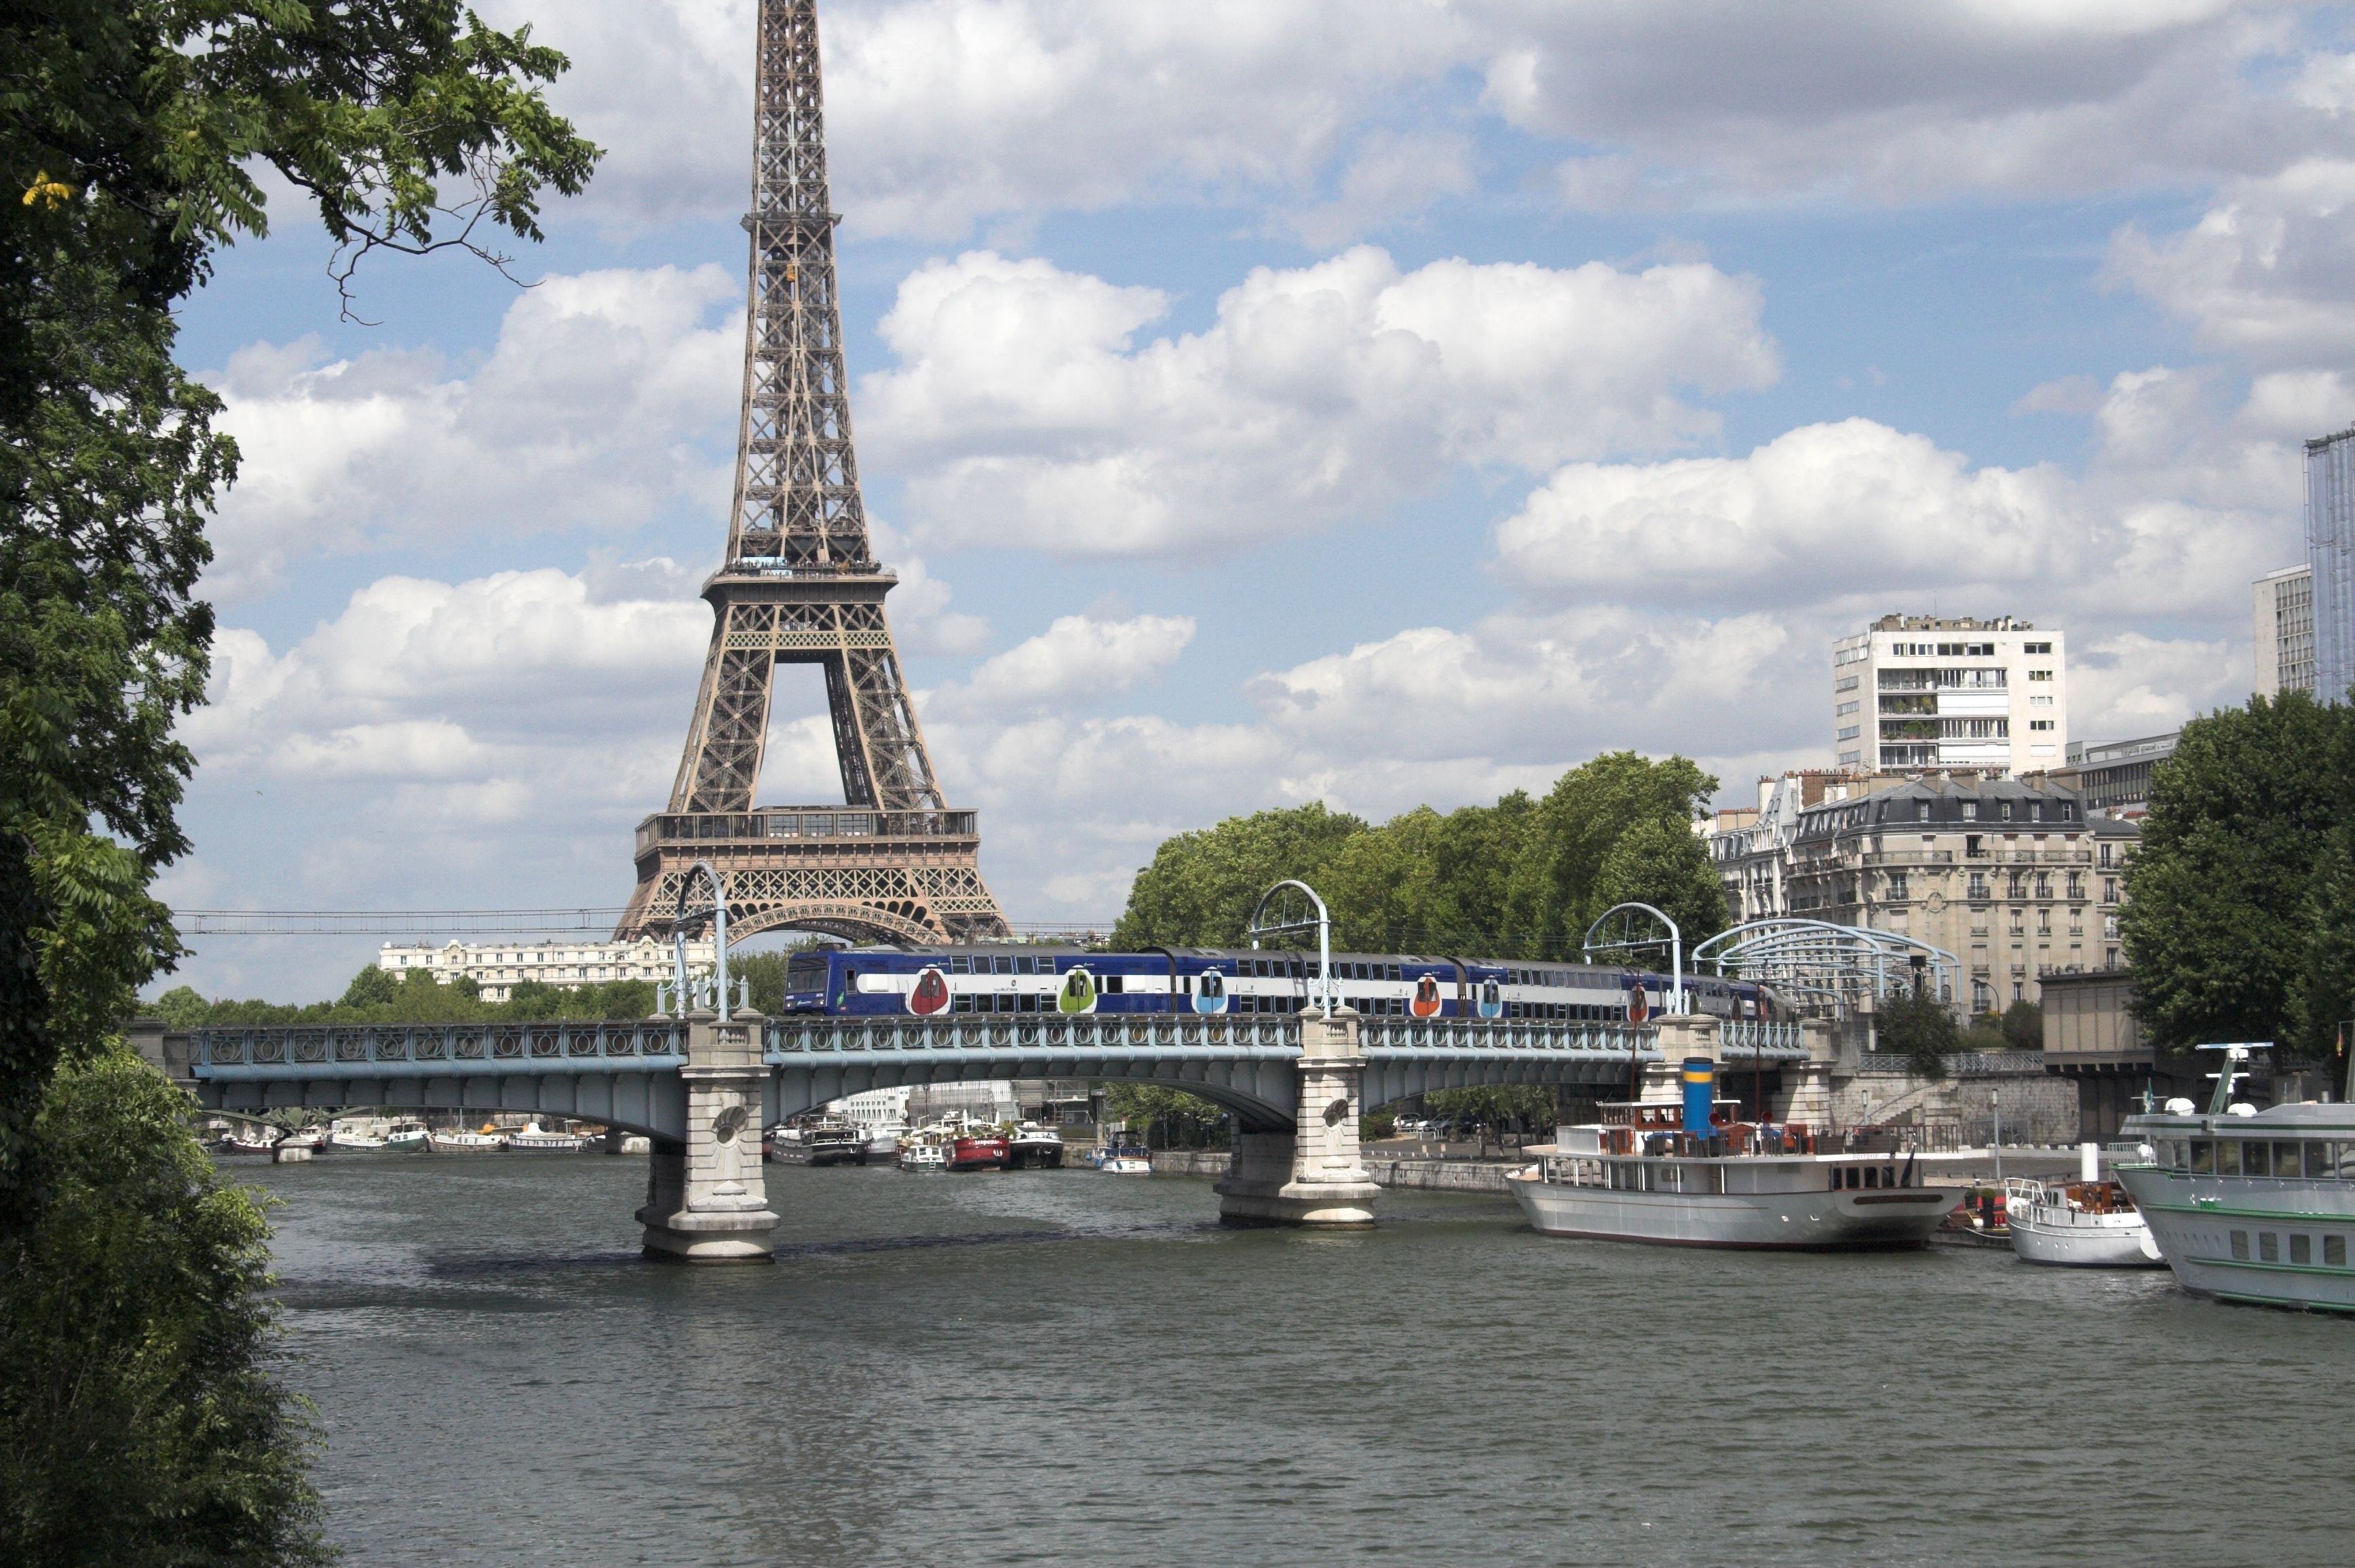 File:Paris RER C crosses the Seine on Pont Rouelle.jpg - Wikimedia Commons